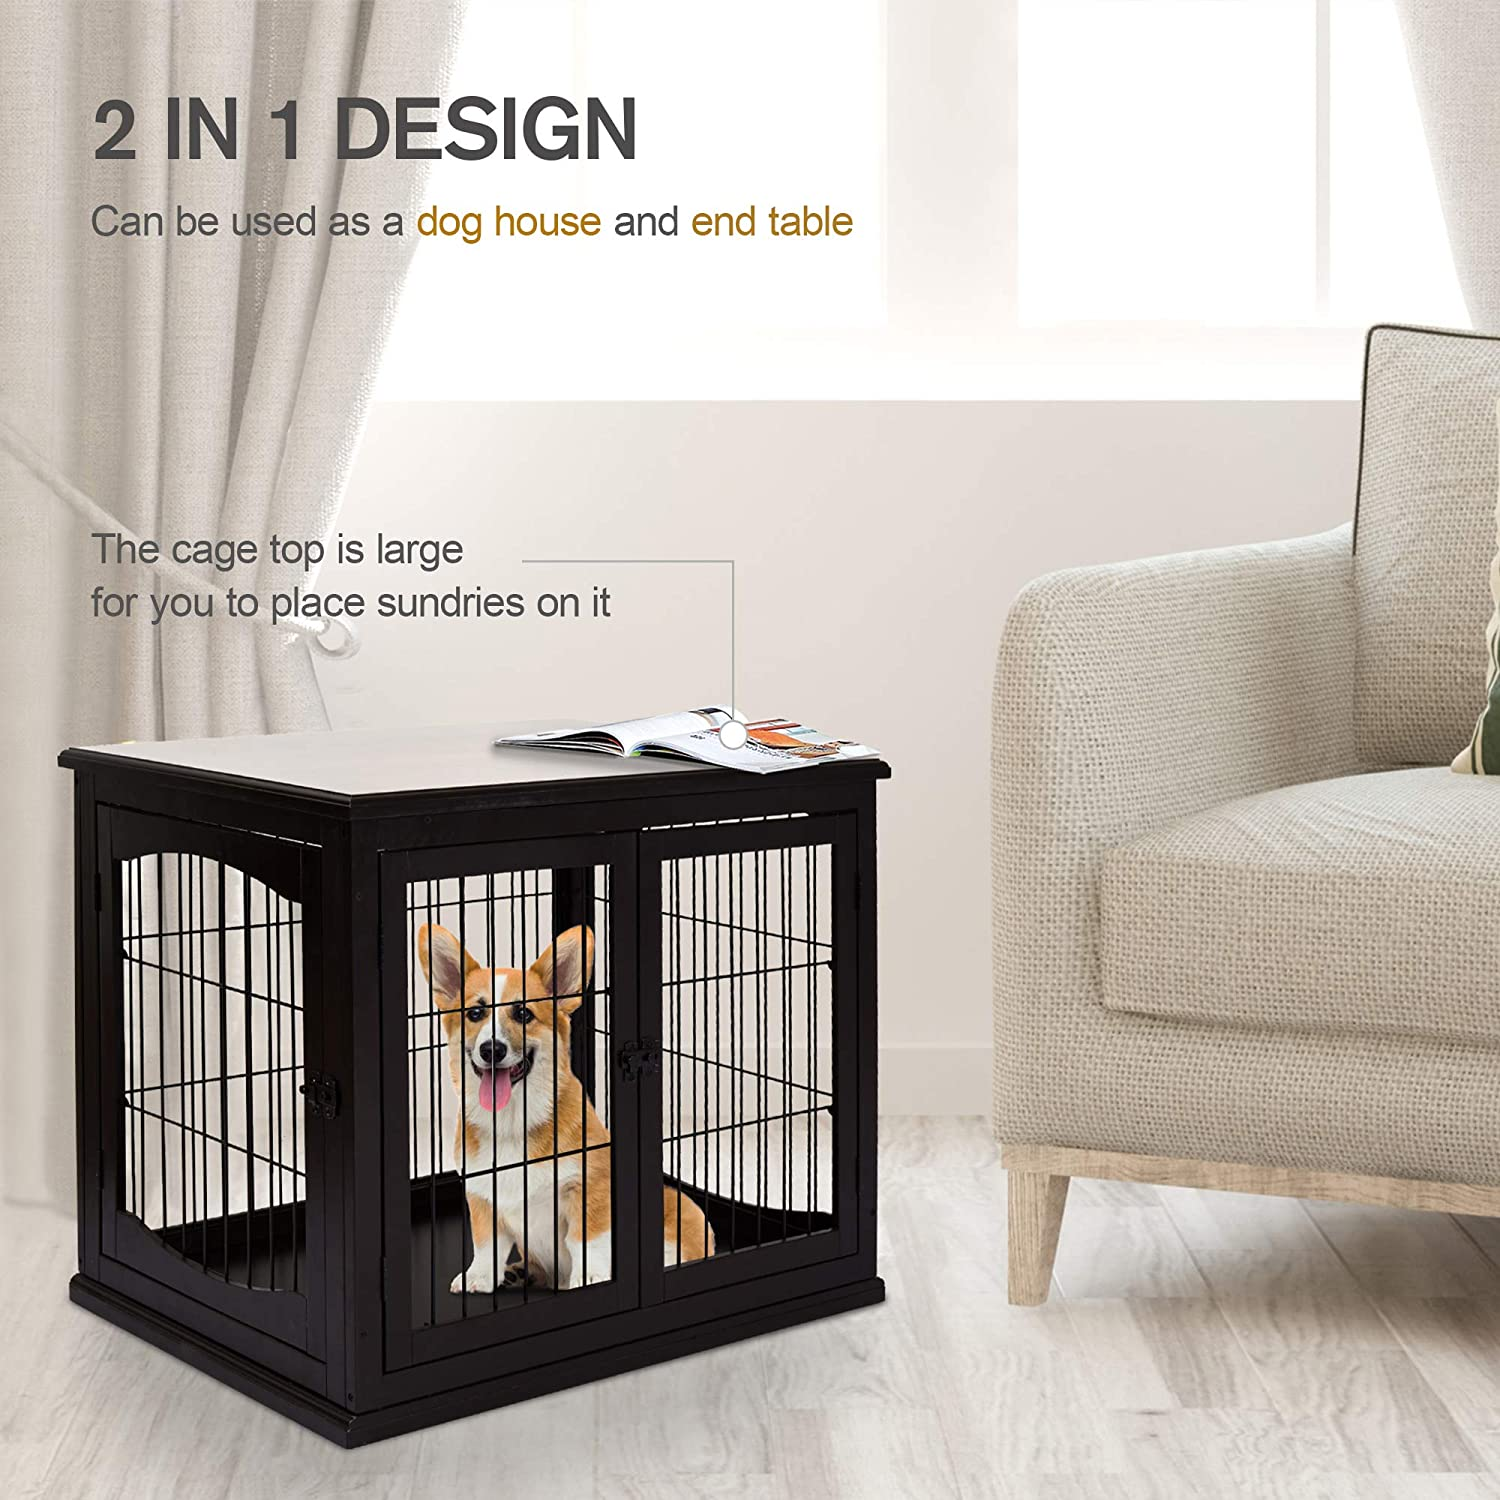 Buy Pawhut 26 Wooden Decorative Dog Cage Pet Crate Kennel With Double Door Entrance A Simple Modern Design Dark Brown Online In Vietnam B089vwvflc